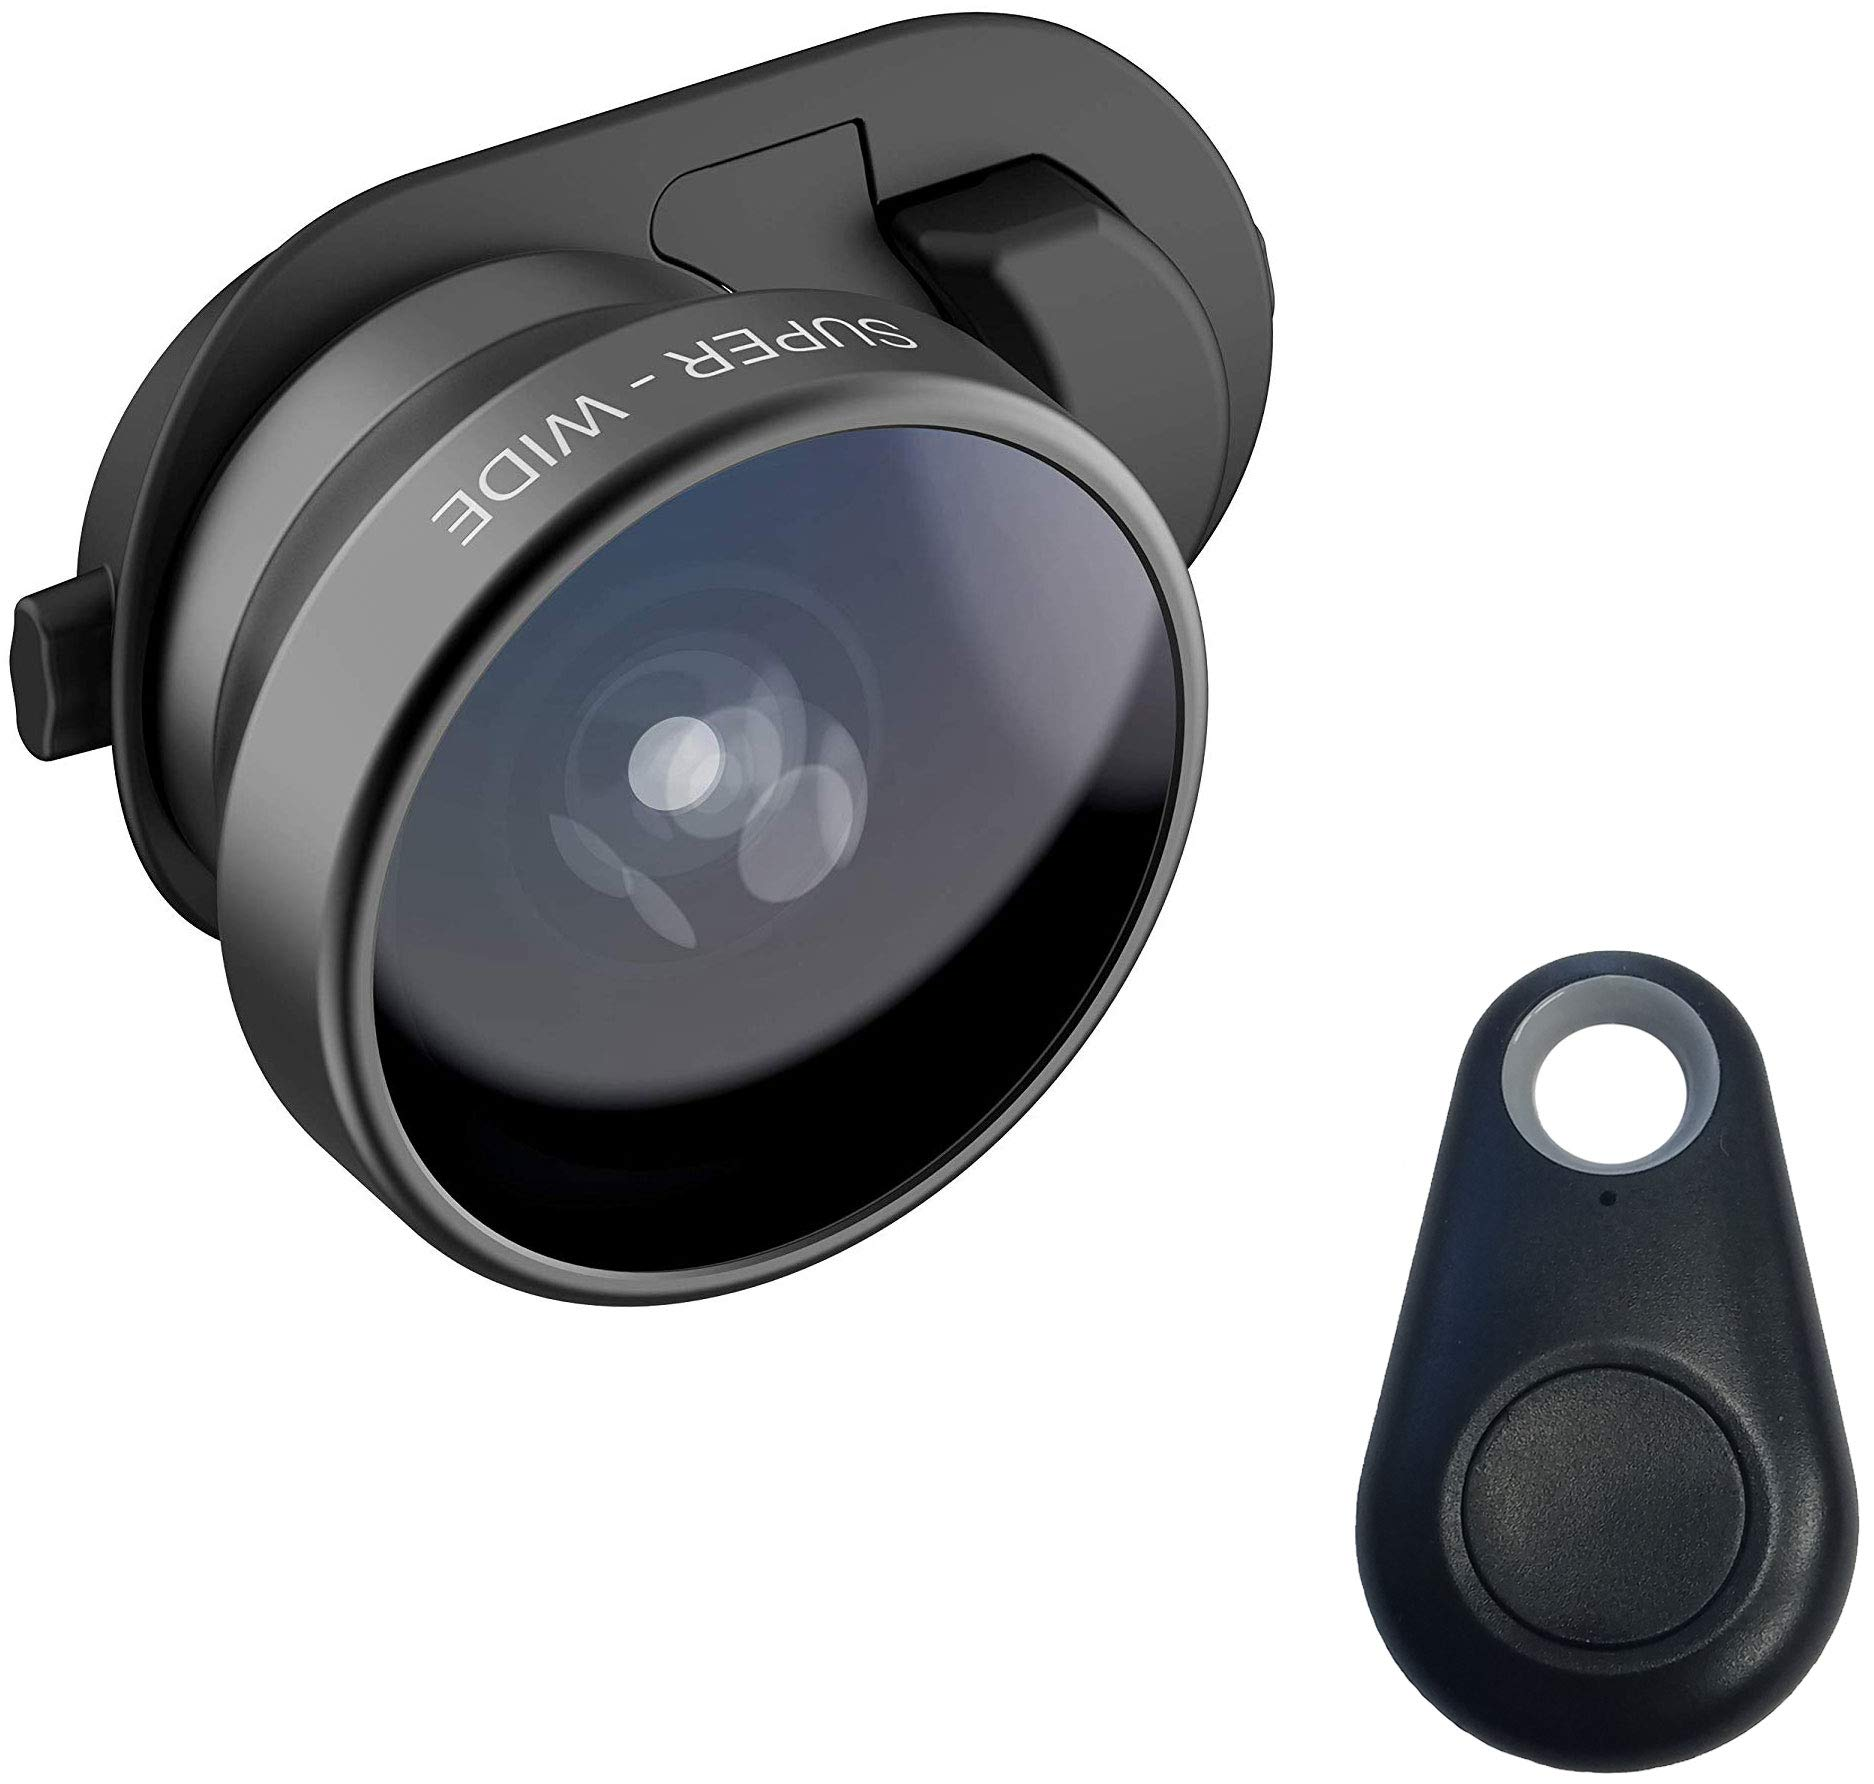 olloclip Multi-Device Clip with 3-in-1 Essential Lens Kit Includes Fisheye + Super Wide Angle + Macro - Compatible with iPhone, Pixel and Samsung Galaxy Smartphones + Selfie Bluetooth Remote Shutter by olloclip